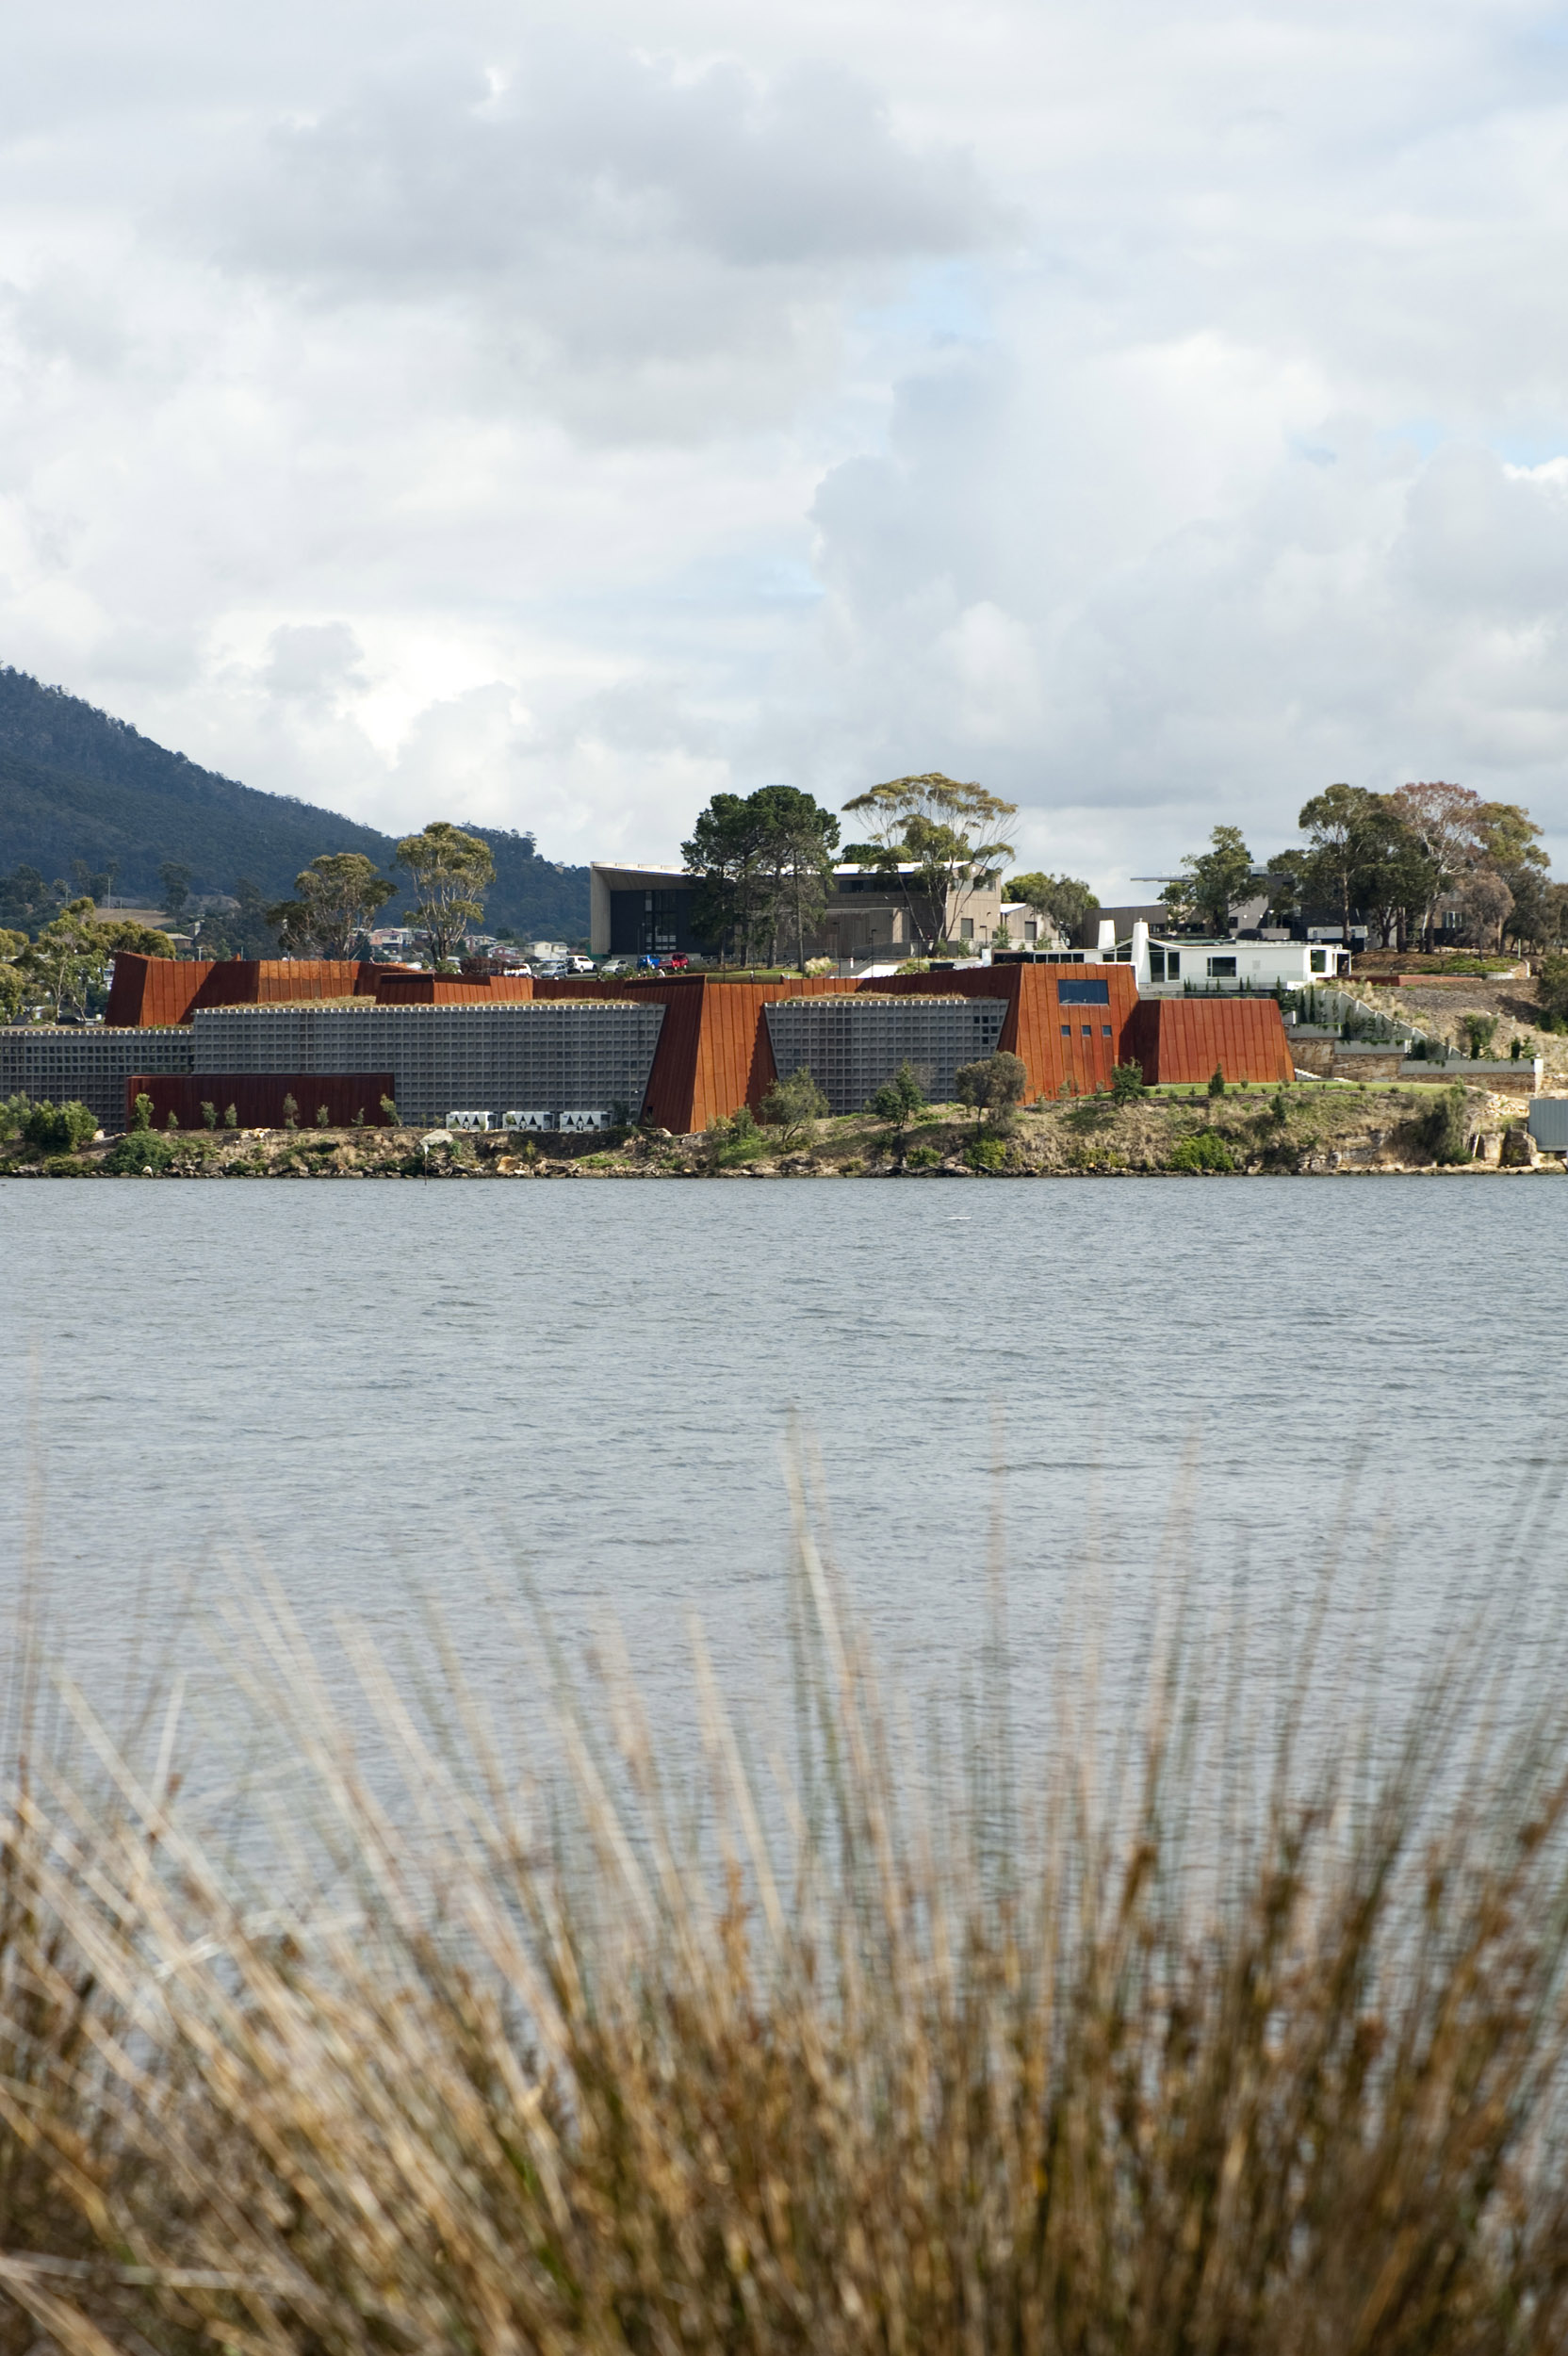 A portrait orientated shot of the Mona art museum and surrounding river in Hobart, Australia.